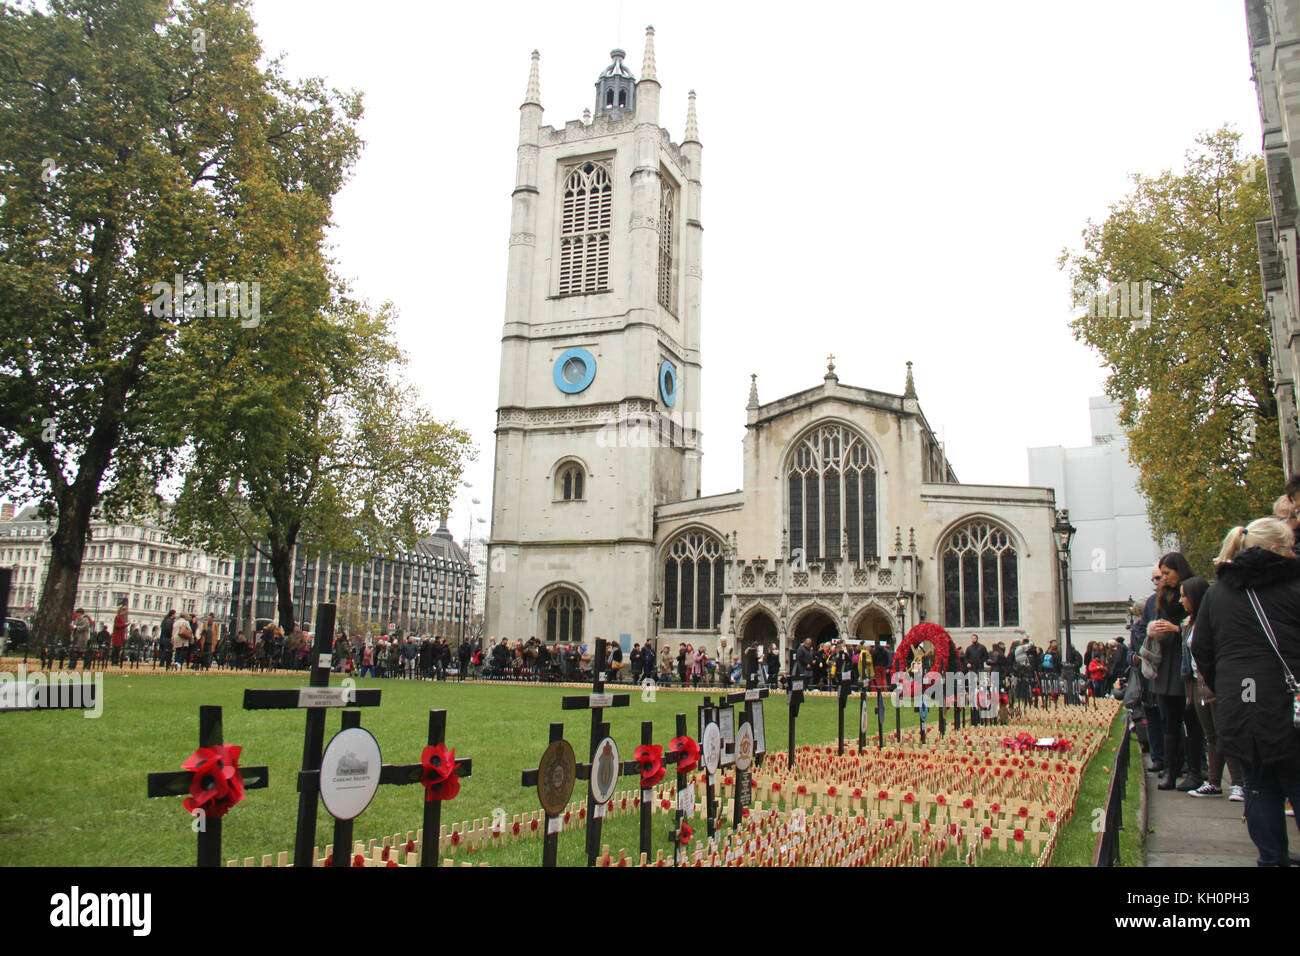 London, UK. 11th Nov 2017. People seen walking below St Margaret's Church in the Westminster Abbey compound, - Stock Image